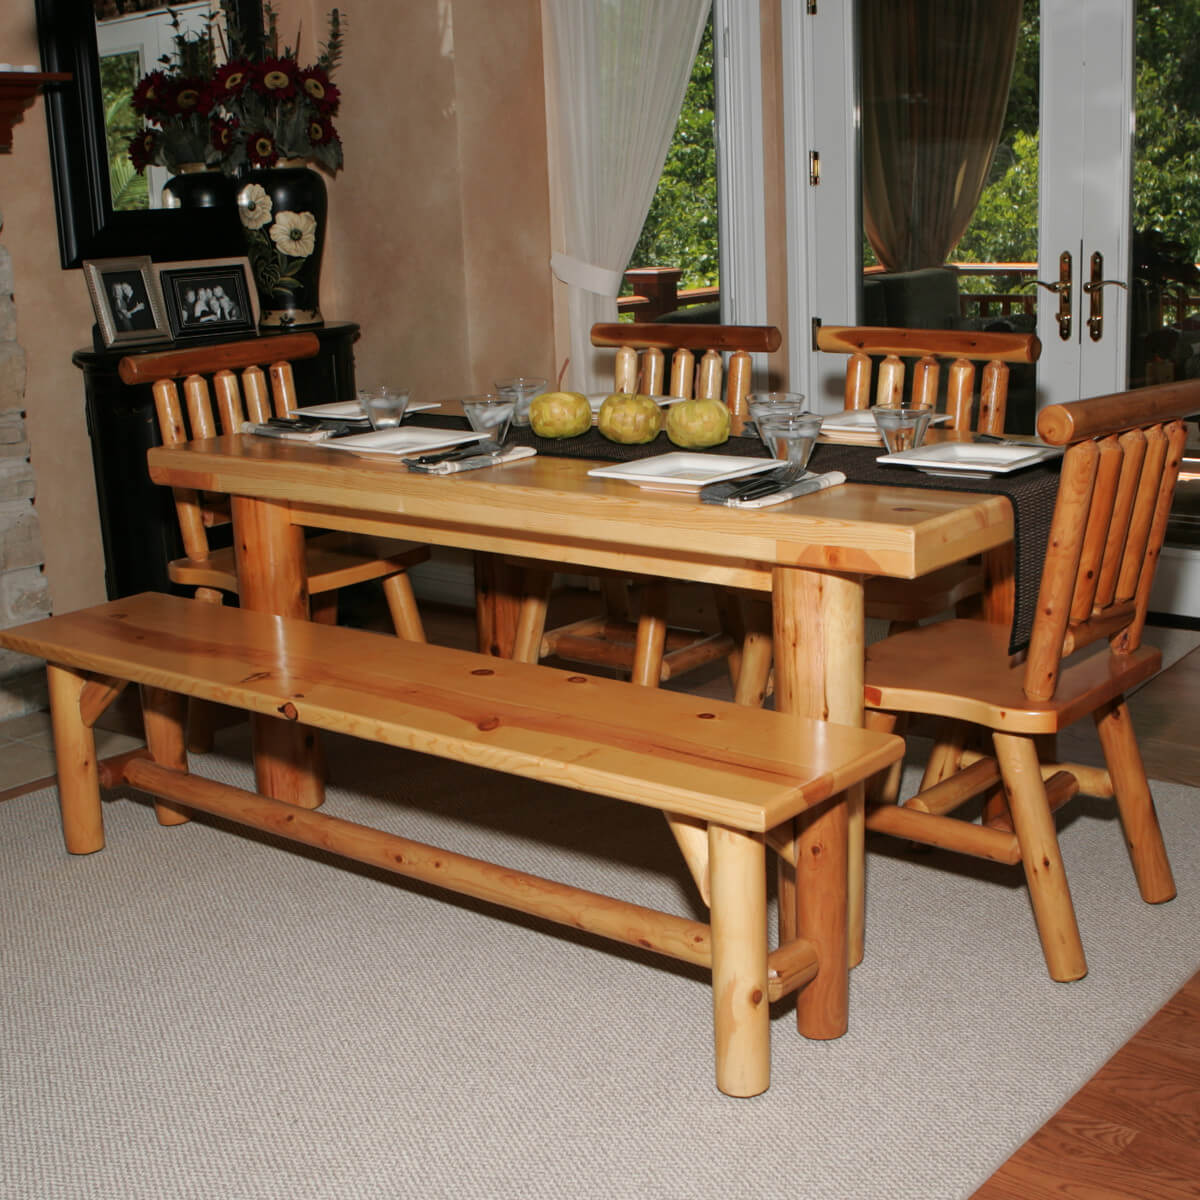 Dining Room Furniture With Bench: 26 Big & Small Dining Room Sets With Bench Seating